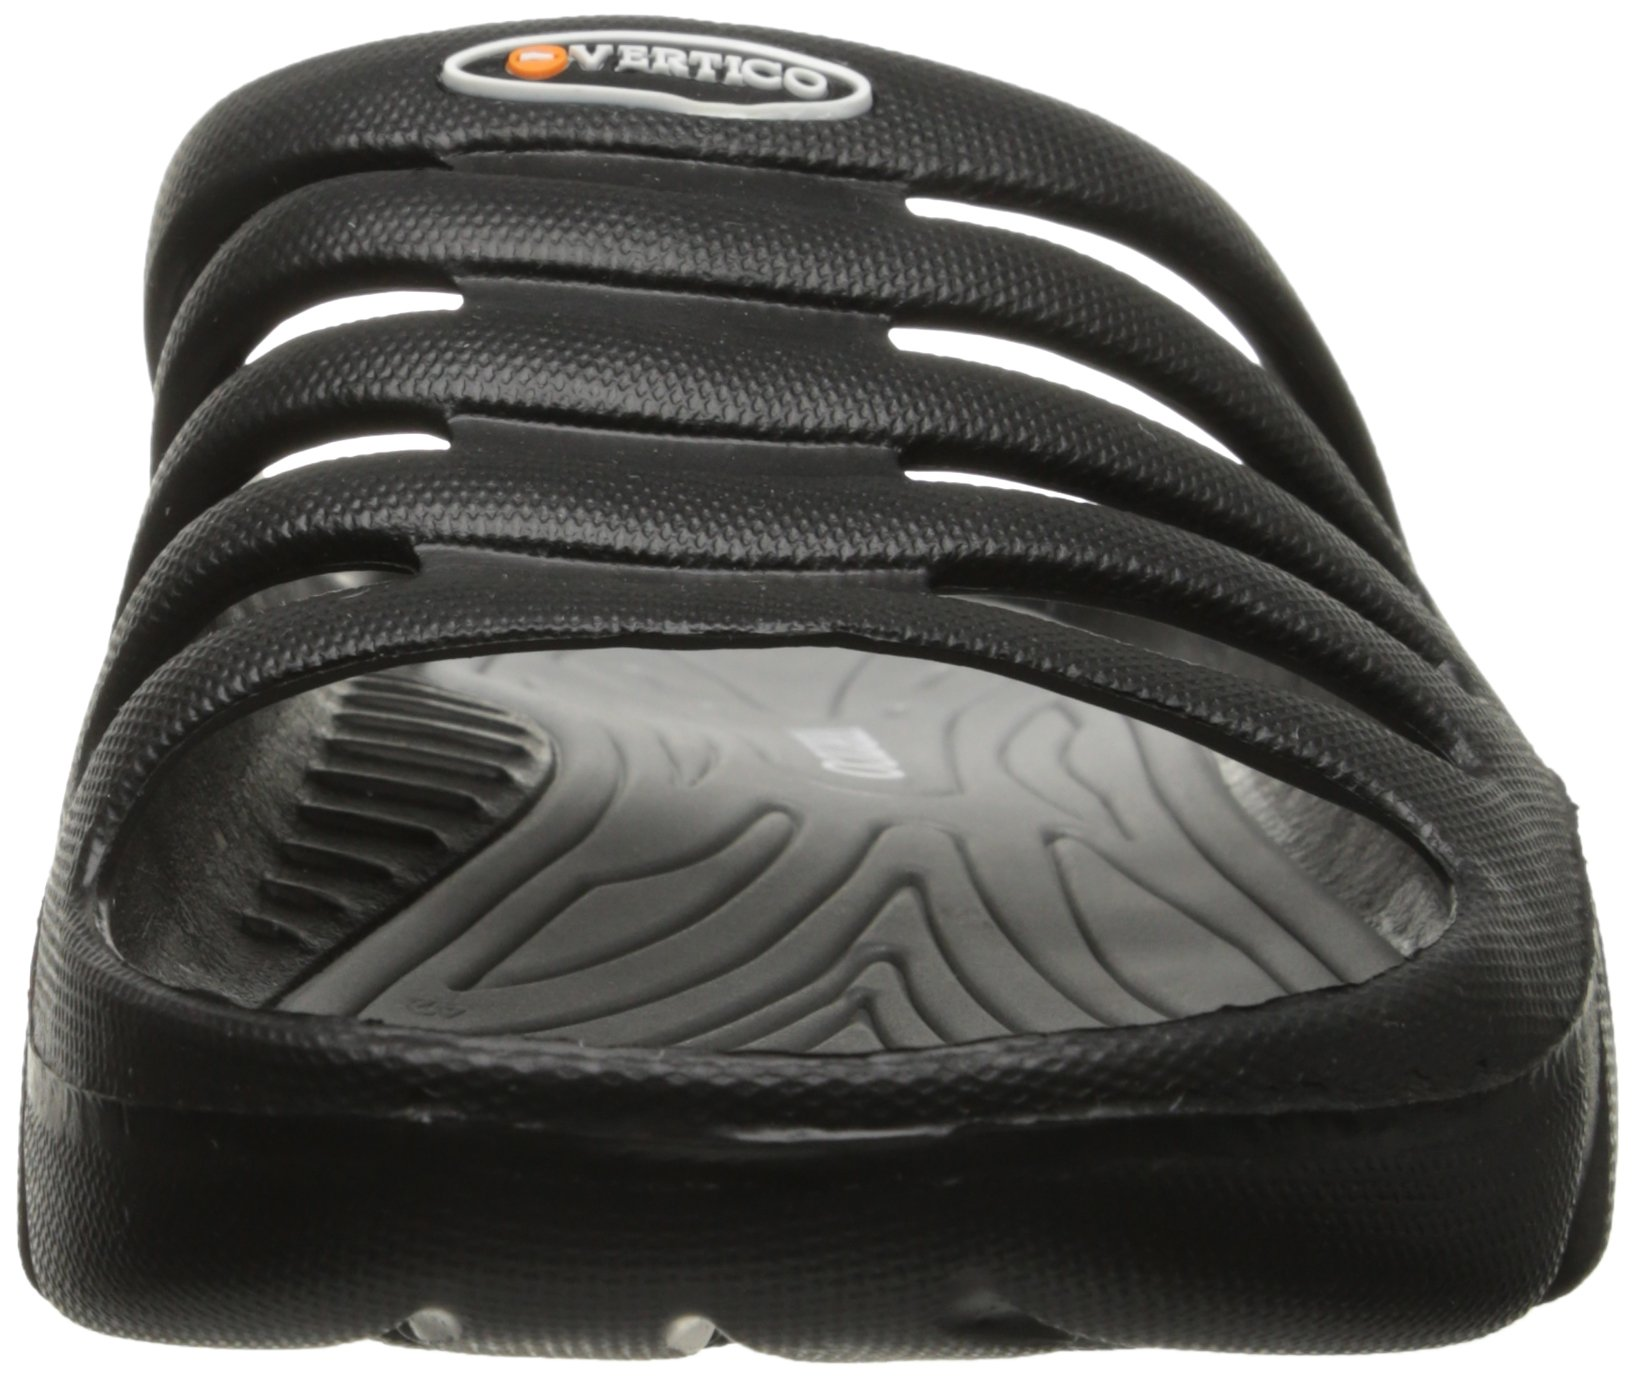 1b8747e21613 Vertico Shower and Poolside Sport Sandal - TiendaMIA.com